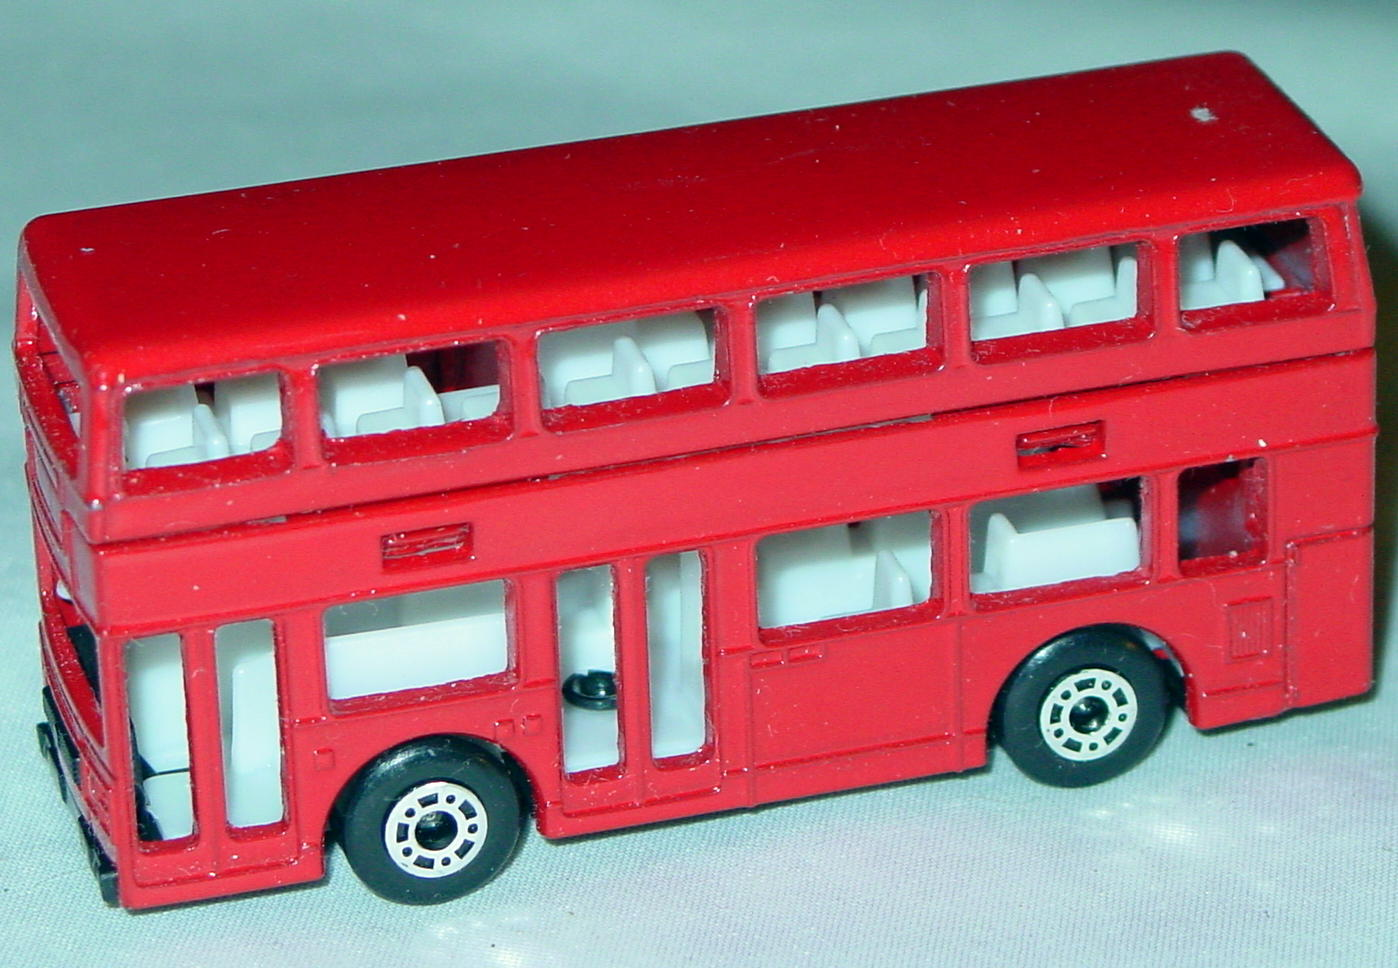 ASAP-CCI 17 C 69 - Titan Bus Red no tampo ASAP blank 1 chip